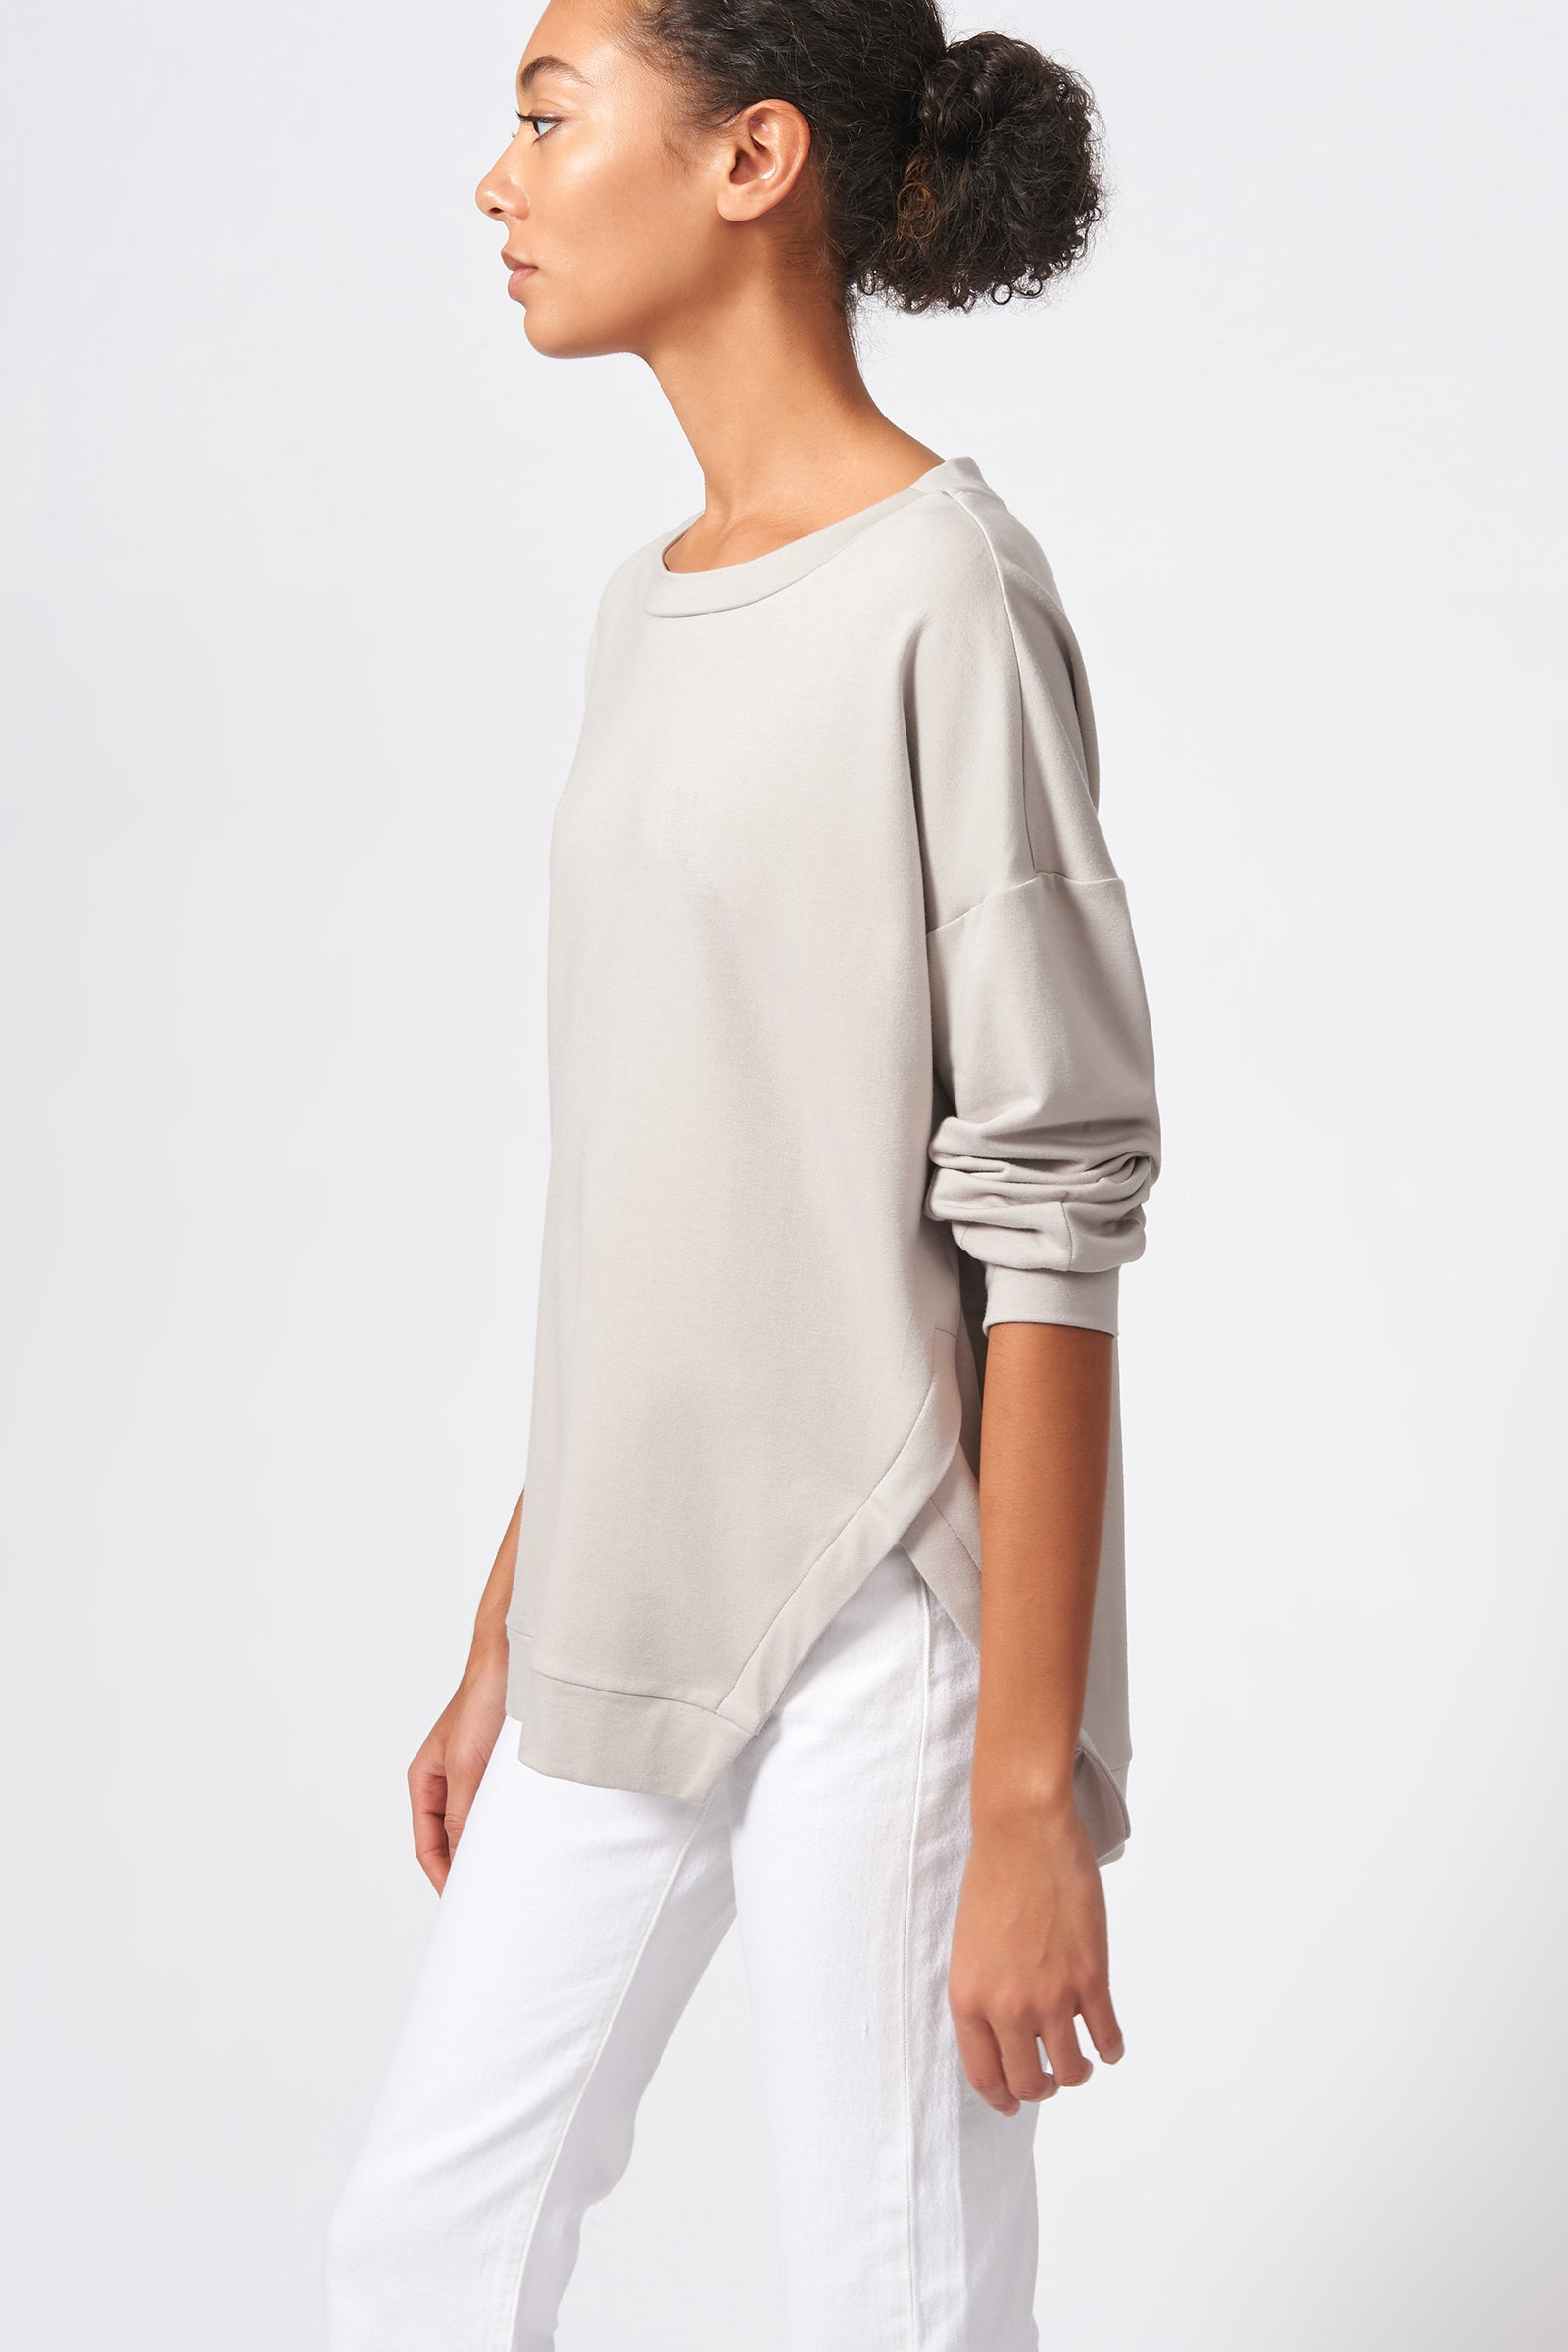 Kal Rieman Side Slit Sweatshirt in Khaki on Model Side View